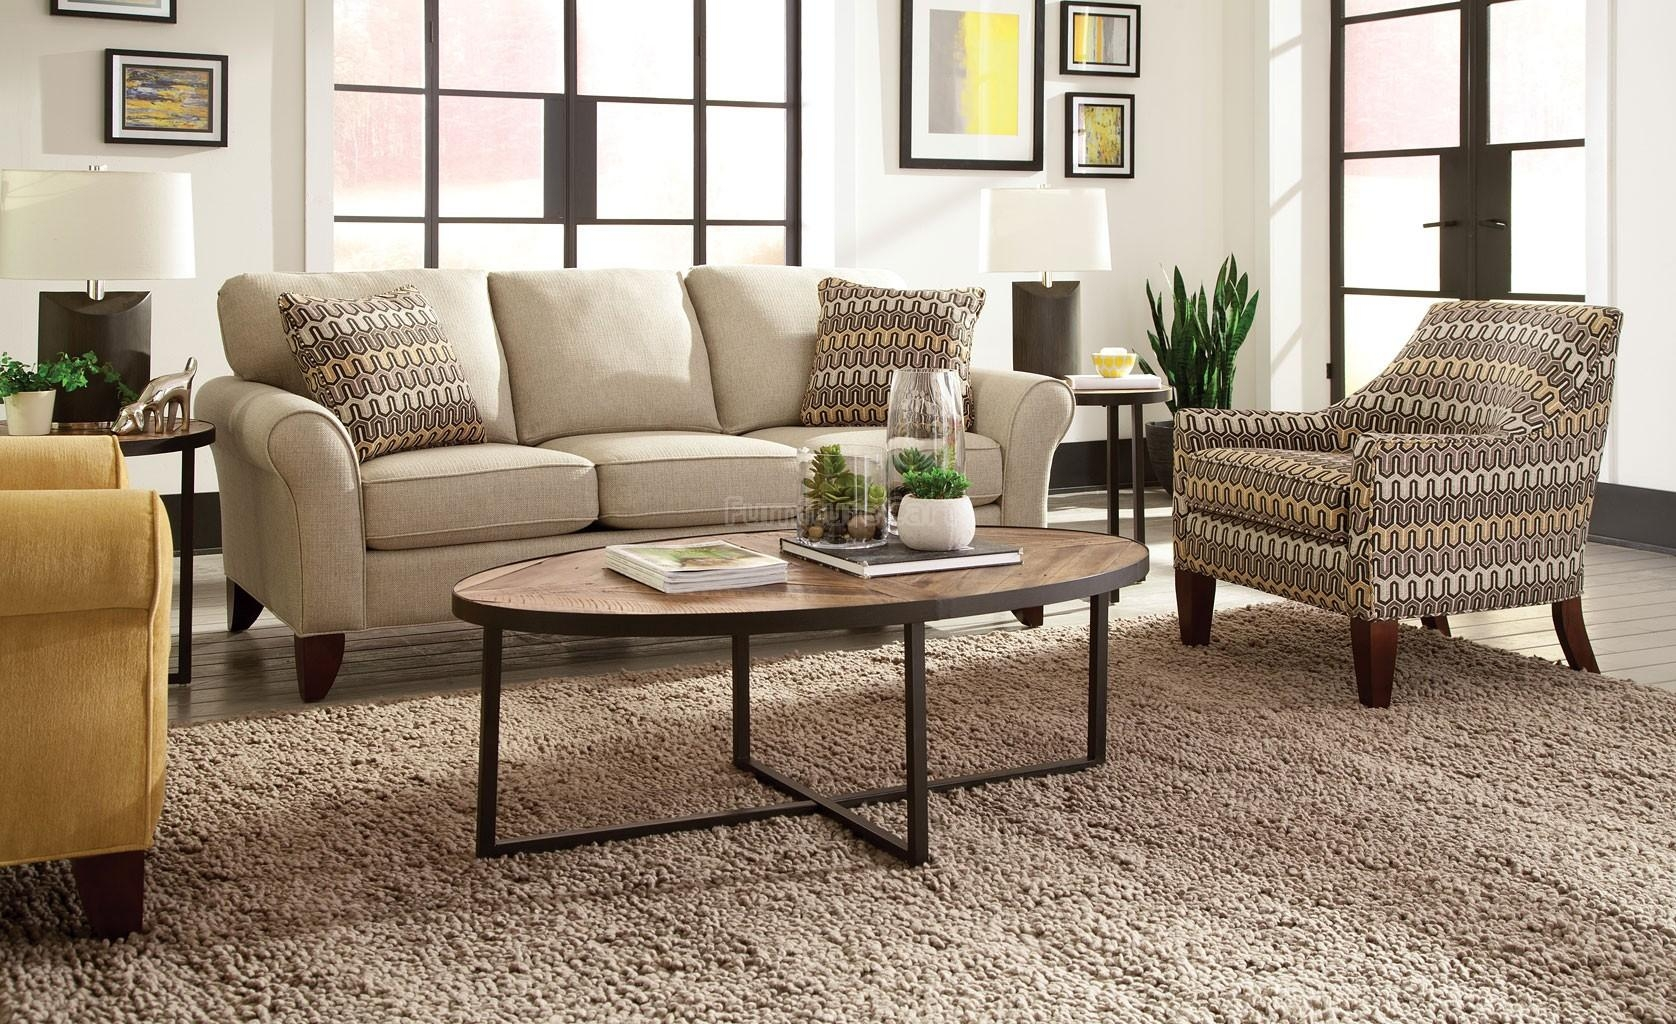 Furnitures: Fill Your Home With Luxury Craftmaster Furniture For Regarding Craftsman Sectional Sofa (View 5 of 15)